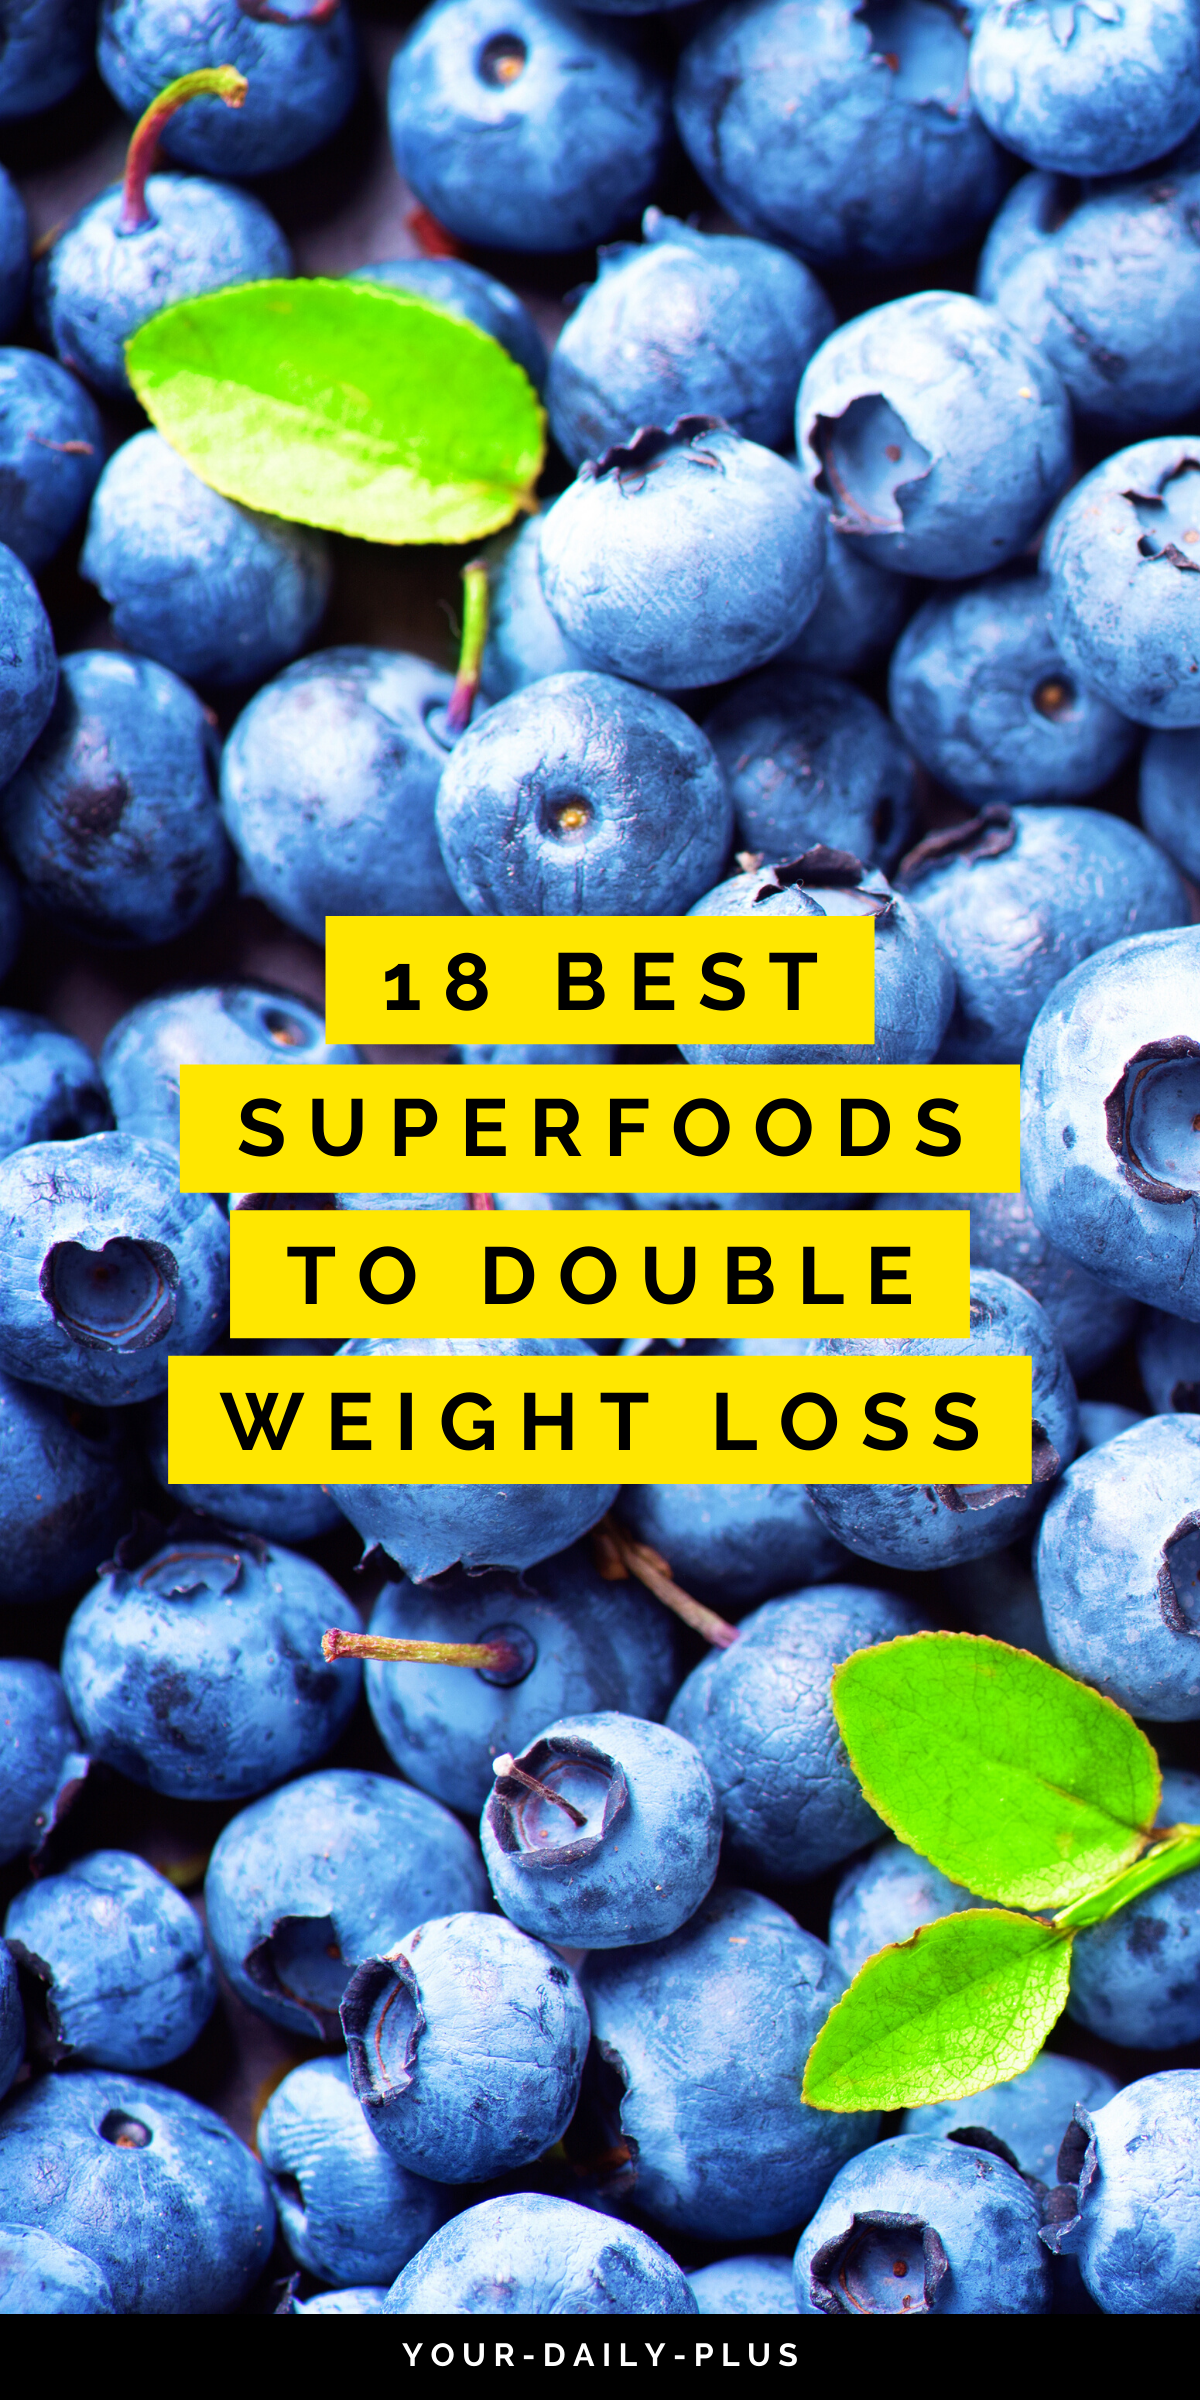 Try to find the best ways to lose weight? Eating these metabolism-boosting superfoods will help you naturally burn crazy amounts of fat. #superfood #diet #healthysnacks